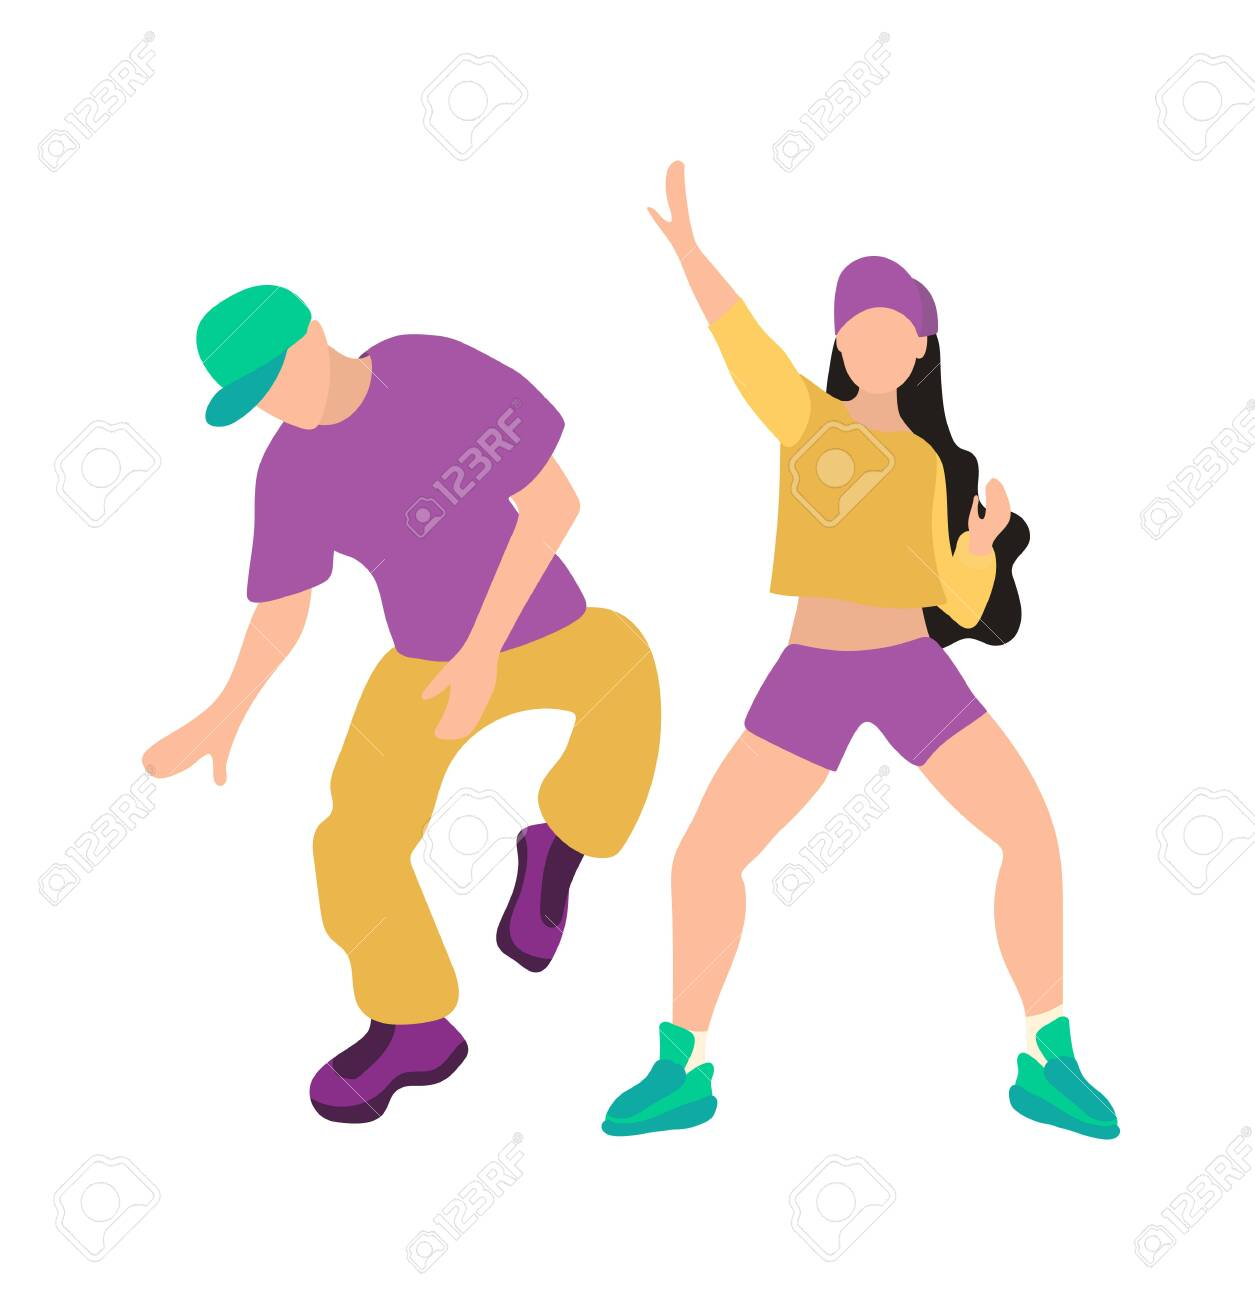 Men and woman dancing hip hop. Youth dance of modern teenagers. Hip-hop dance, poster of dance school, breakdance, turnip. Young people Isolated on a white background in flat style. - 141522976